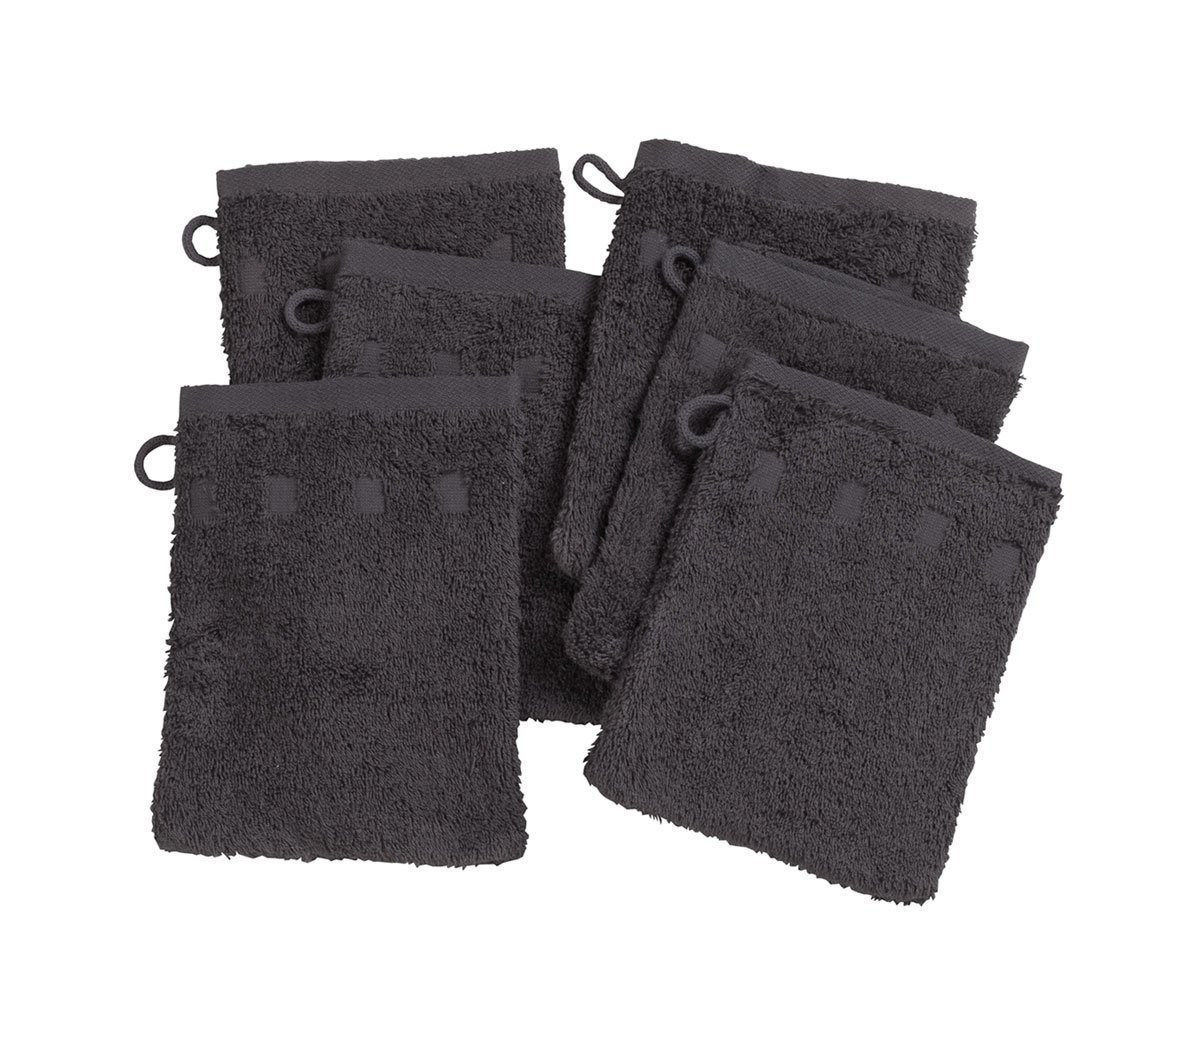 Set of 6 Charcoal Wash Mitts GetSet2Save COMIN18JU015602